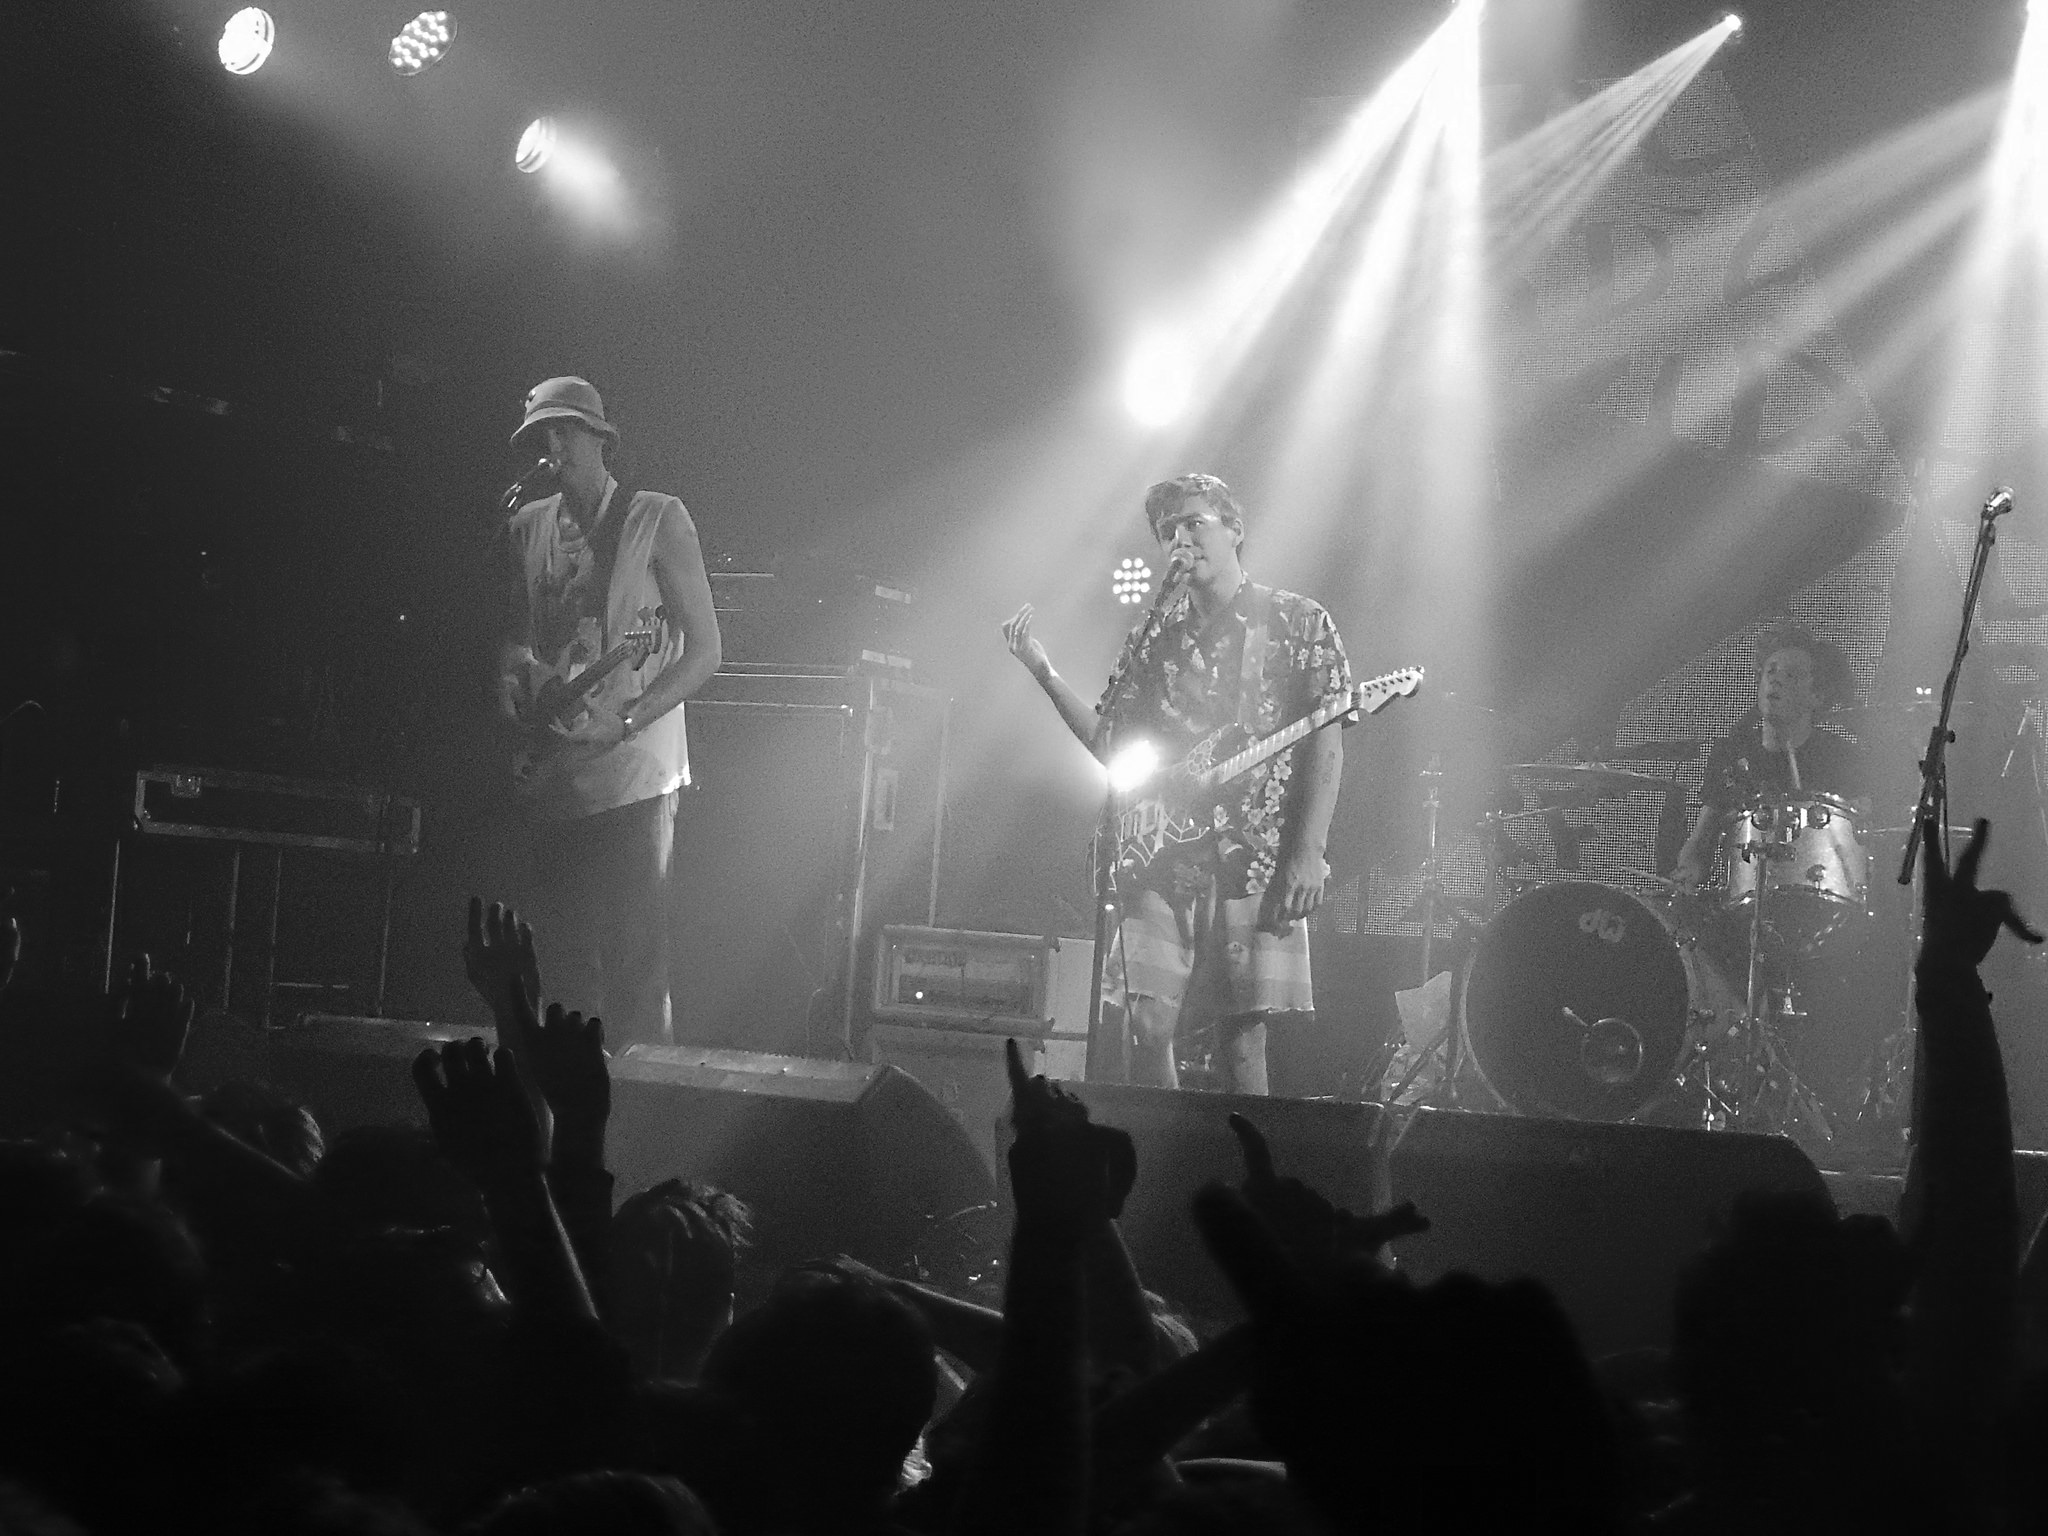 FIDLAR in London in 2015. (Drew de F Fawkes/Flickr)